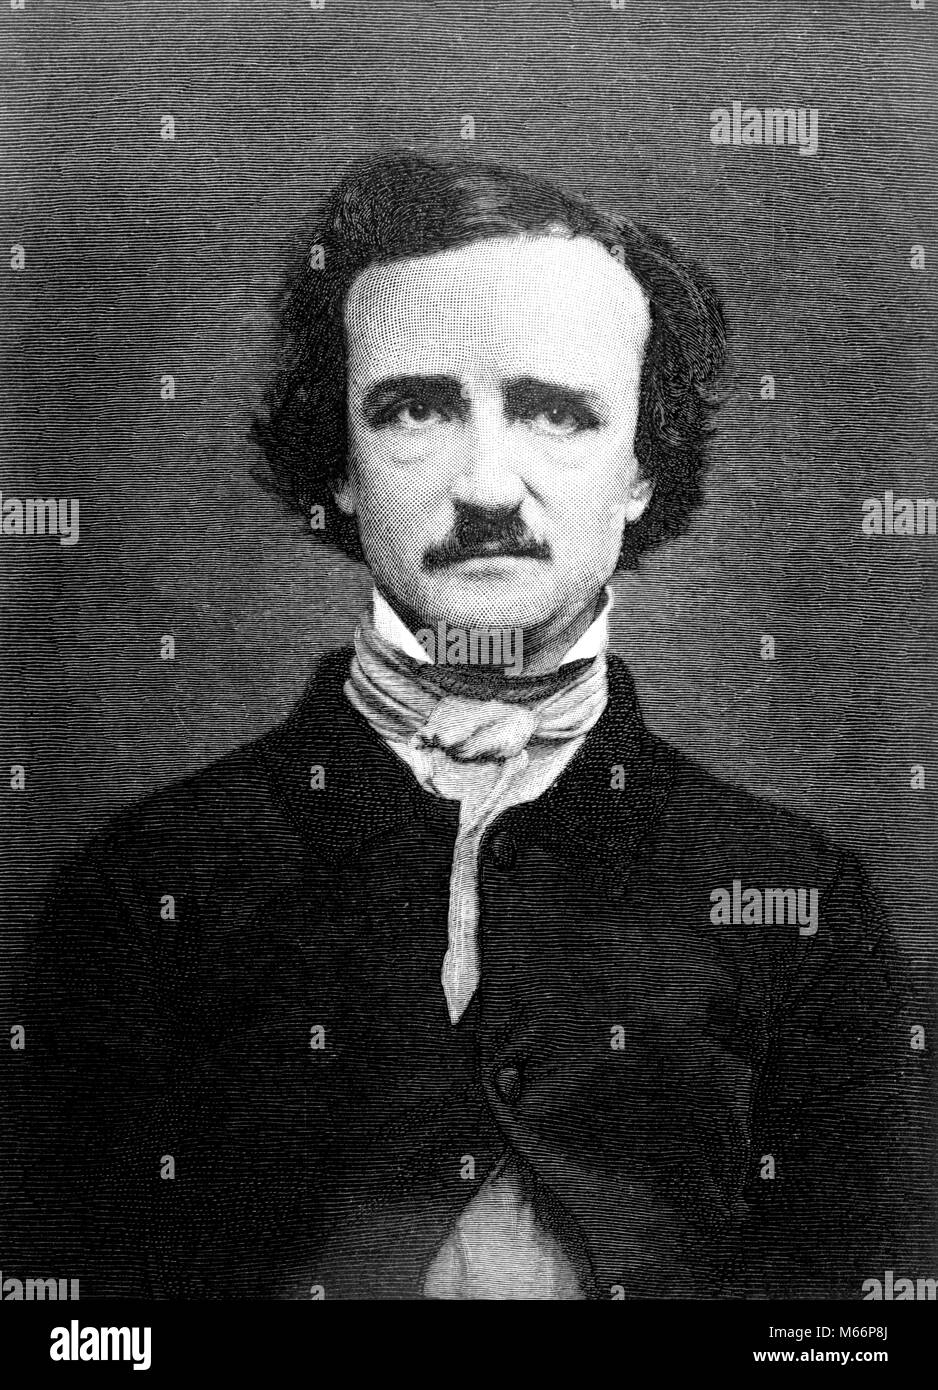 1840s PORTRAIT EDGAR ALLAN POE 1809-1849 MACABRE GOTHIC POET WRITER AUTHOR CRITIC - q61388 CPC001 HARS MID-ADULT - Stock Image